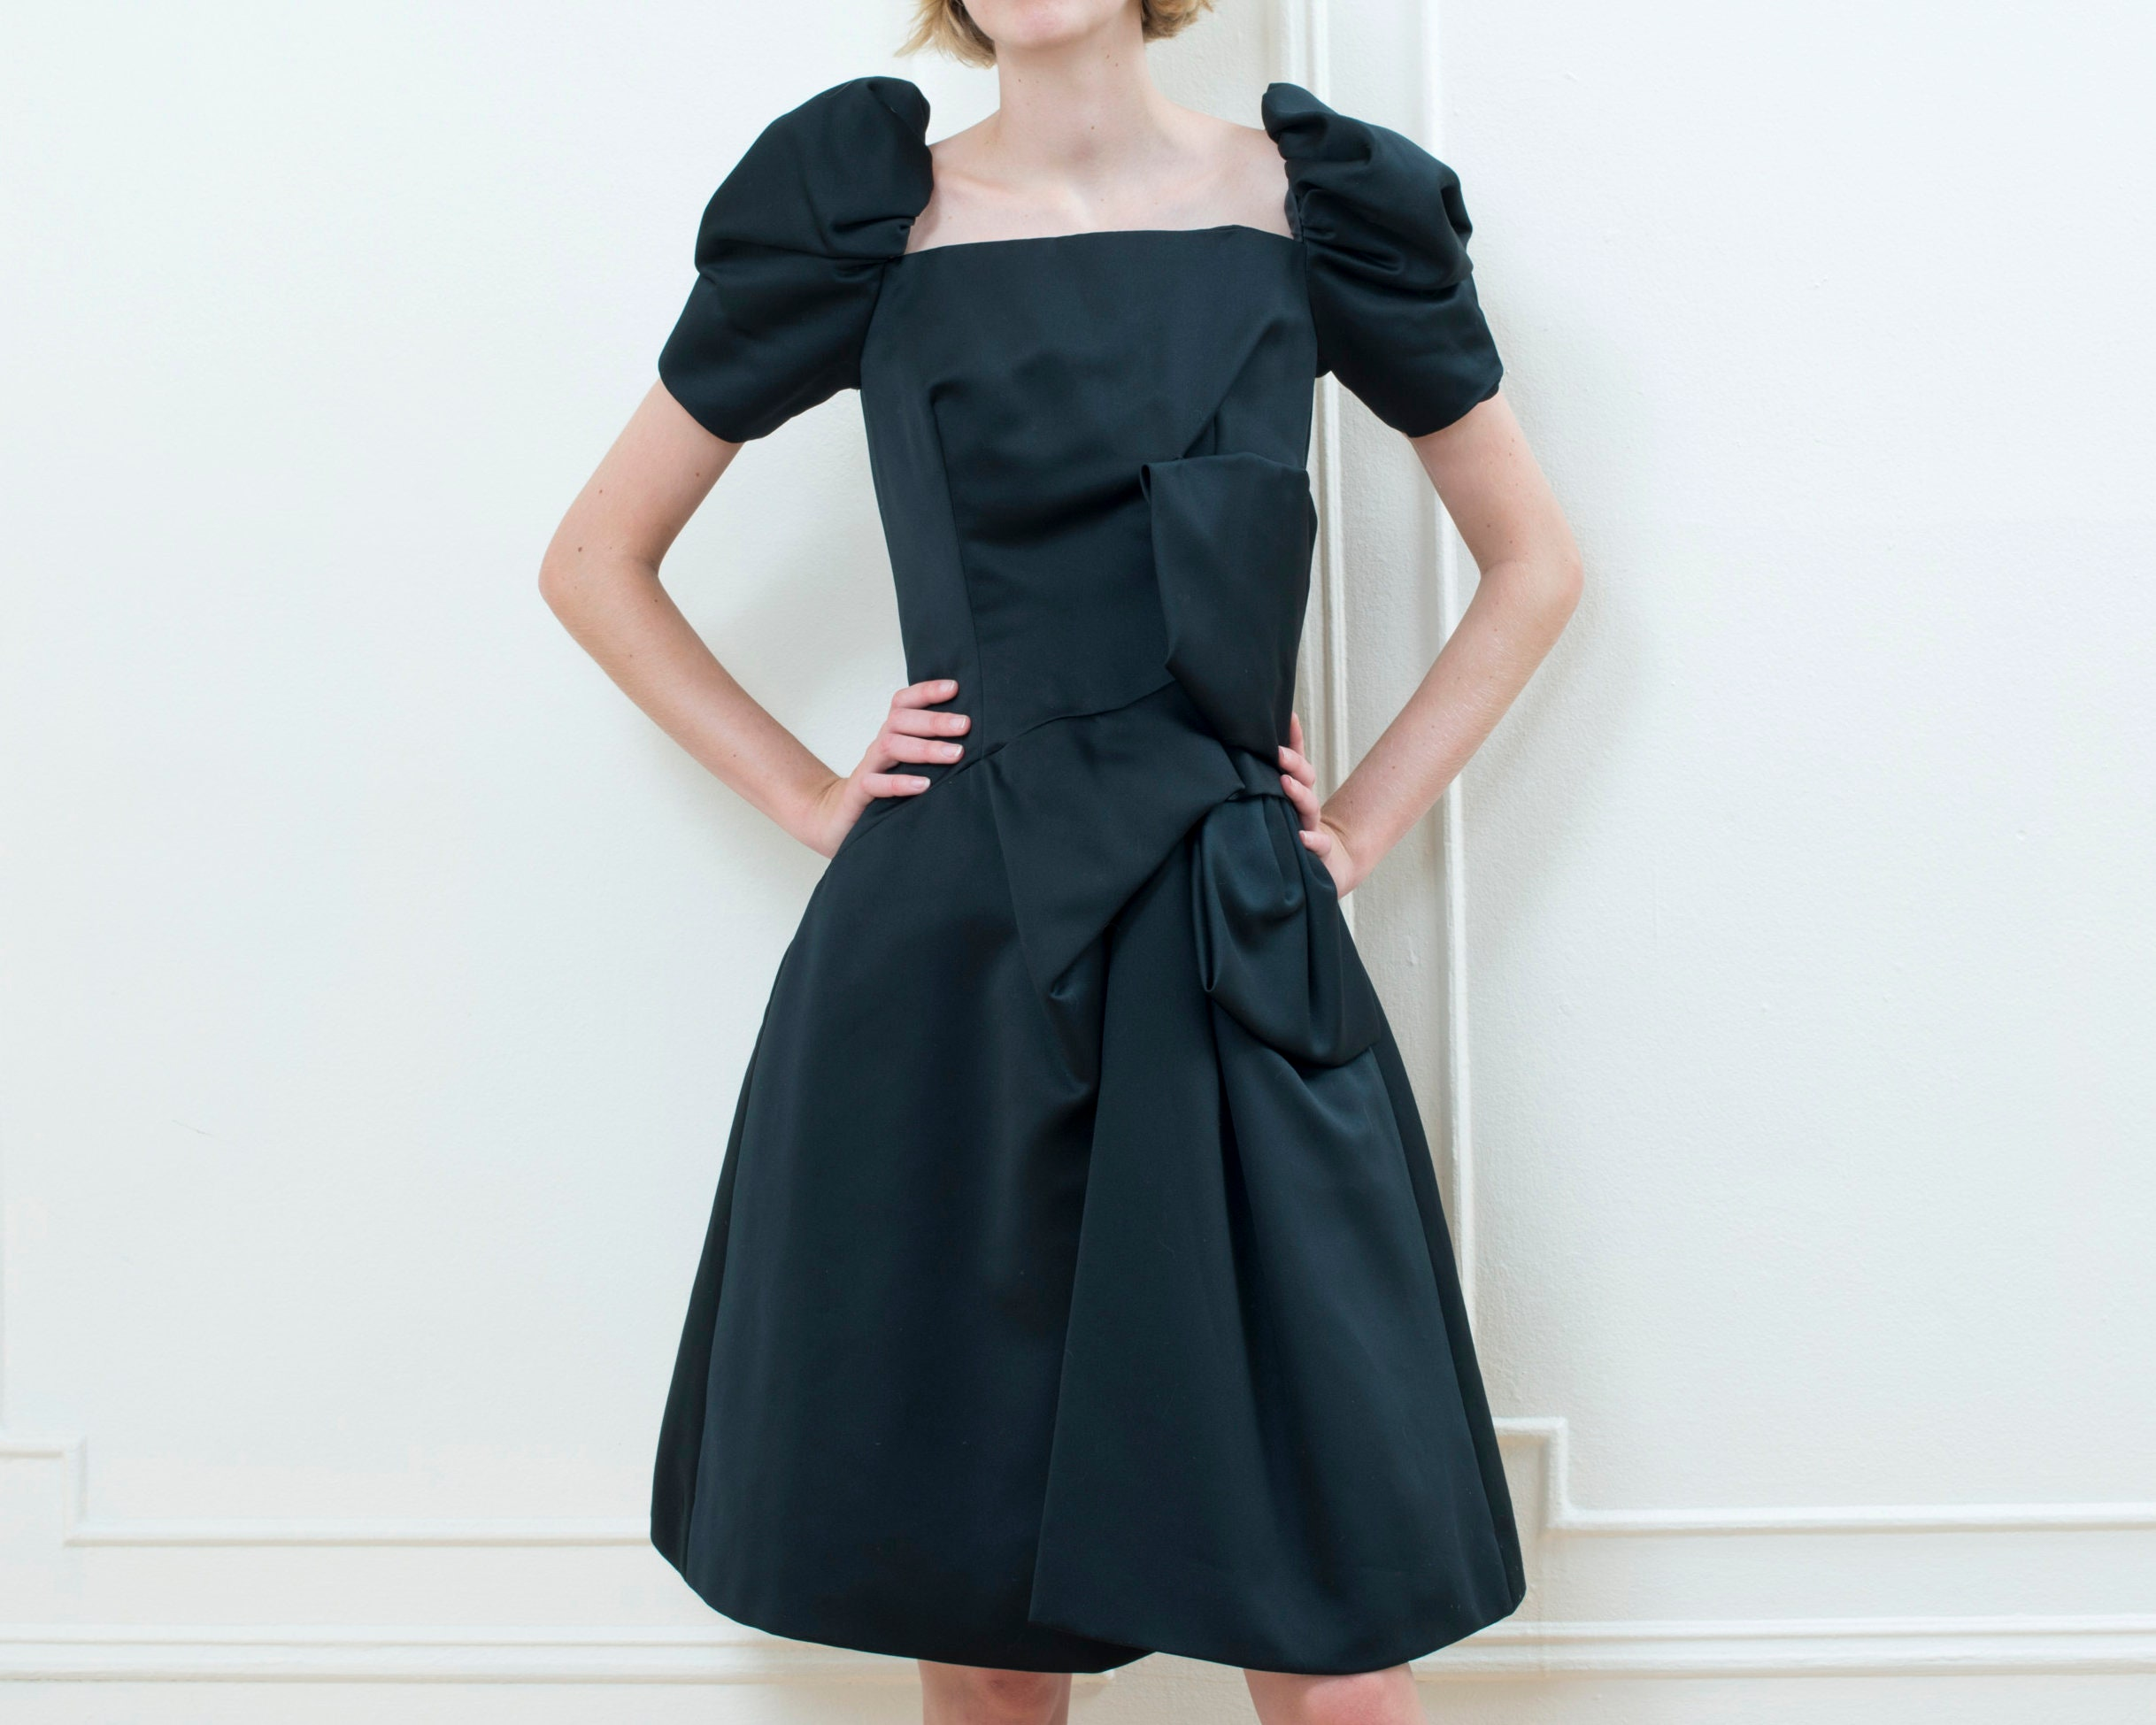 80s Dresses | Casual to Party Dresses 80S Black Victor Costa Dress  Satin Party Minimalist Puff Sleeve Bow Tie Waist Square Neck Midi Cocktail Minimal Prom $25.00 AT vintagedancer.com